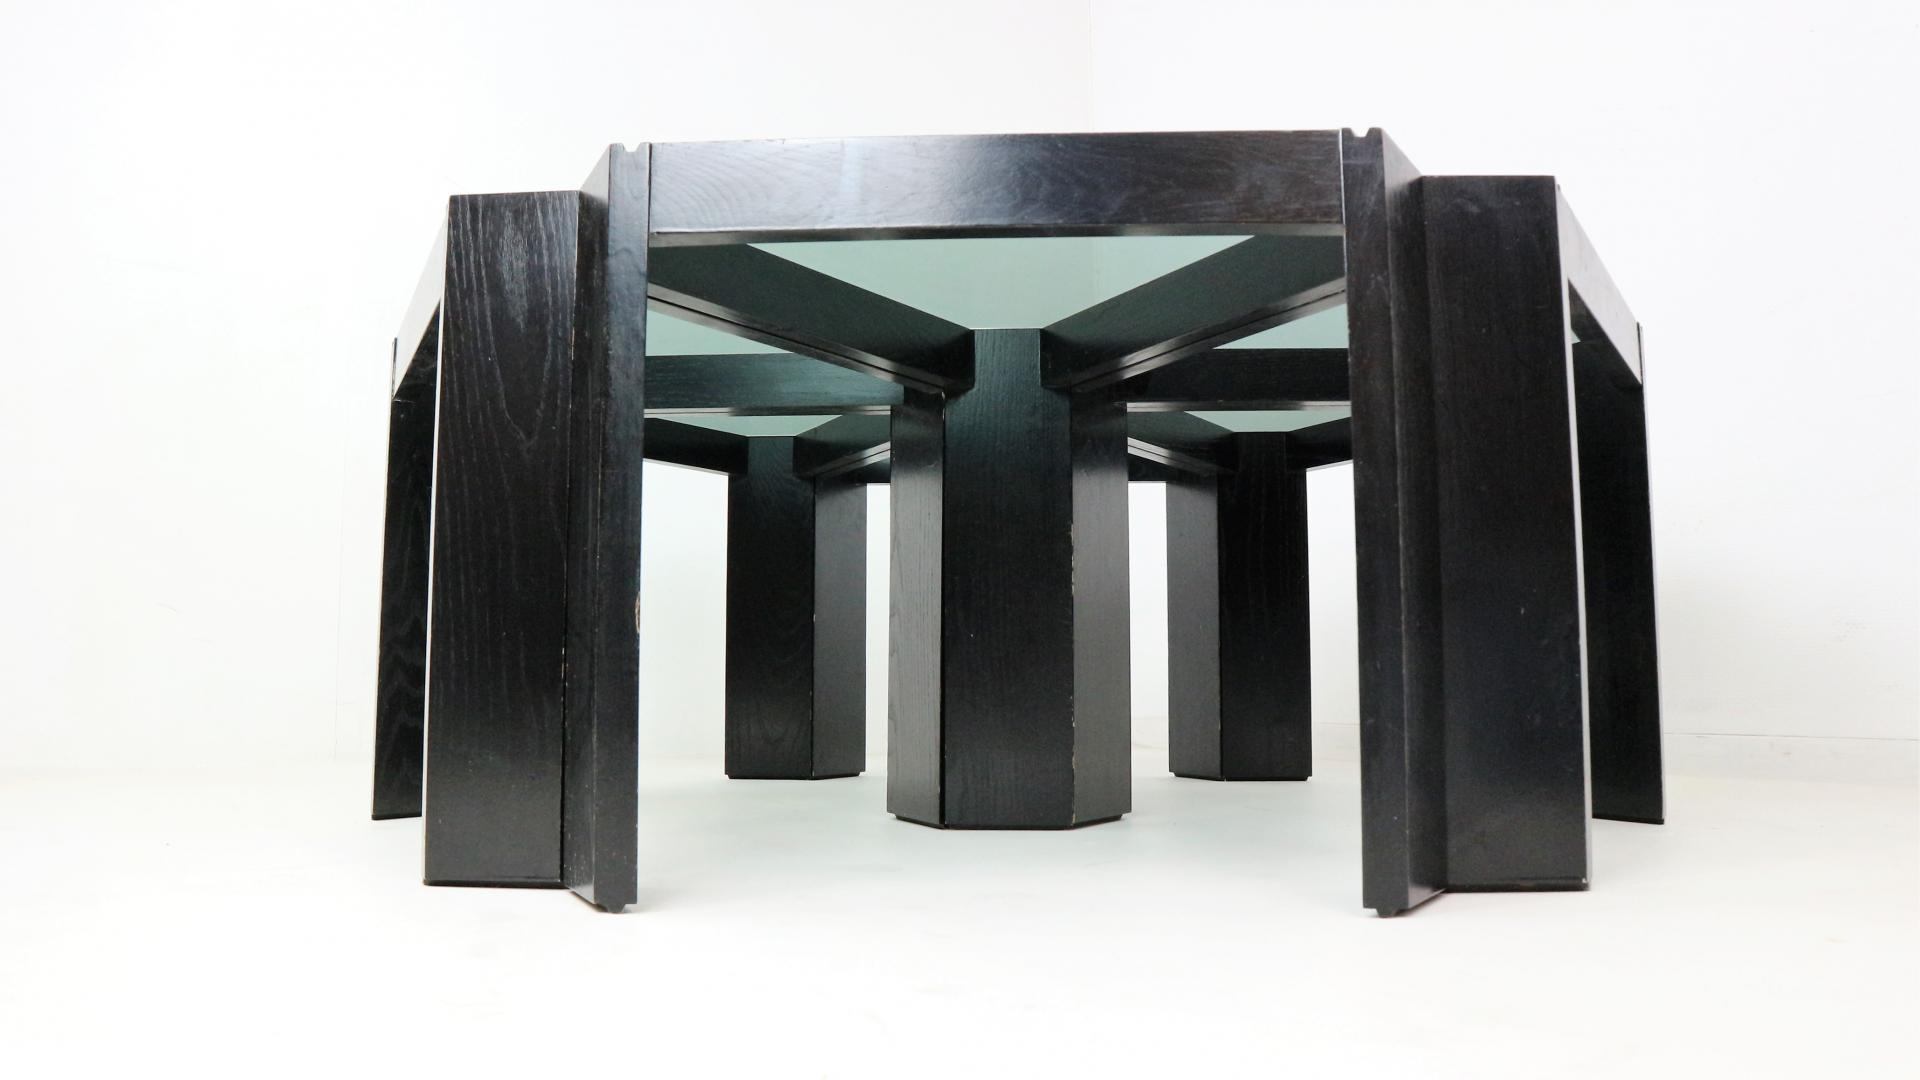 Geometric Stackable Nesting Tables Porada Arredi 1970s